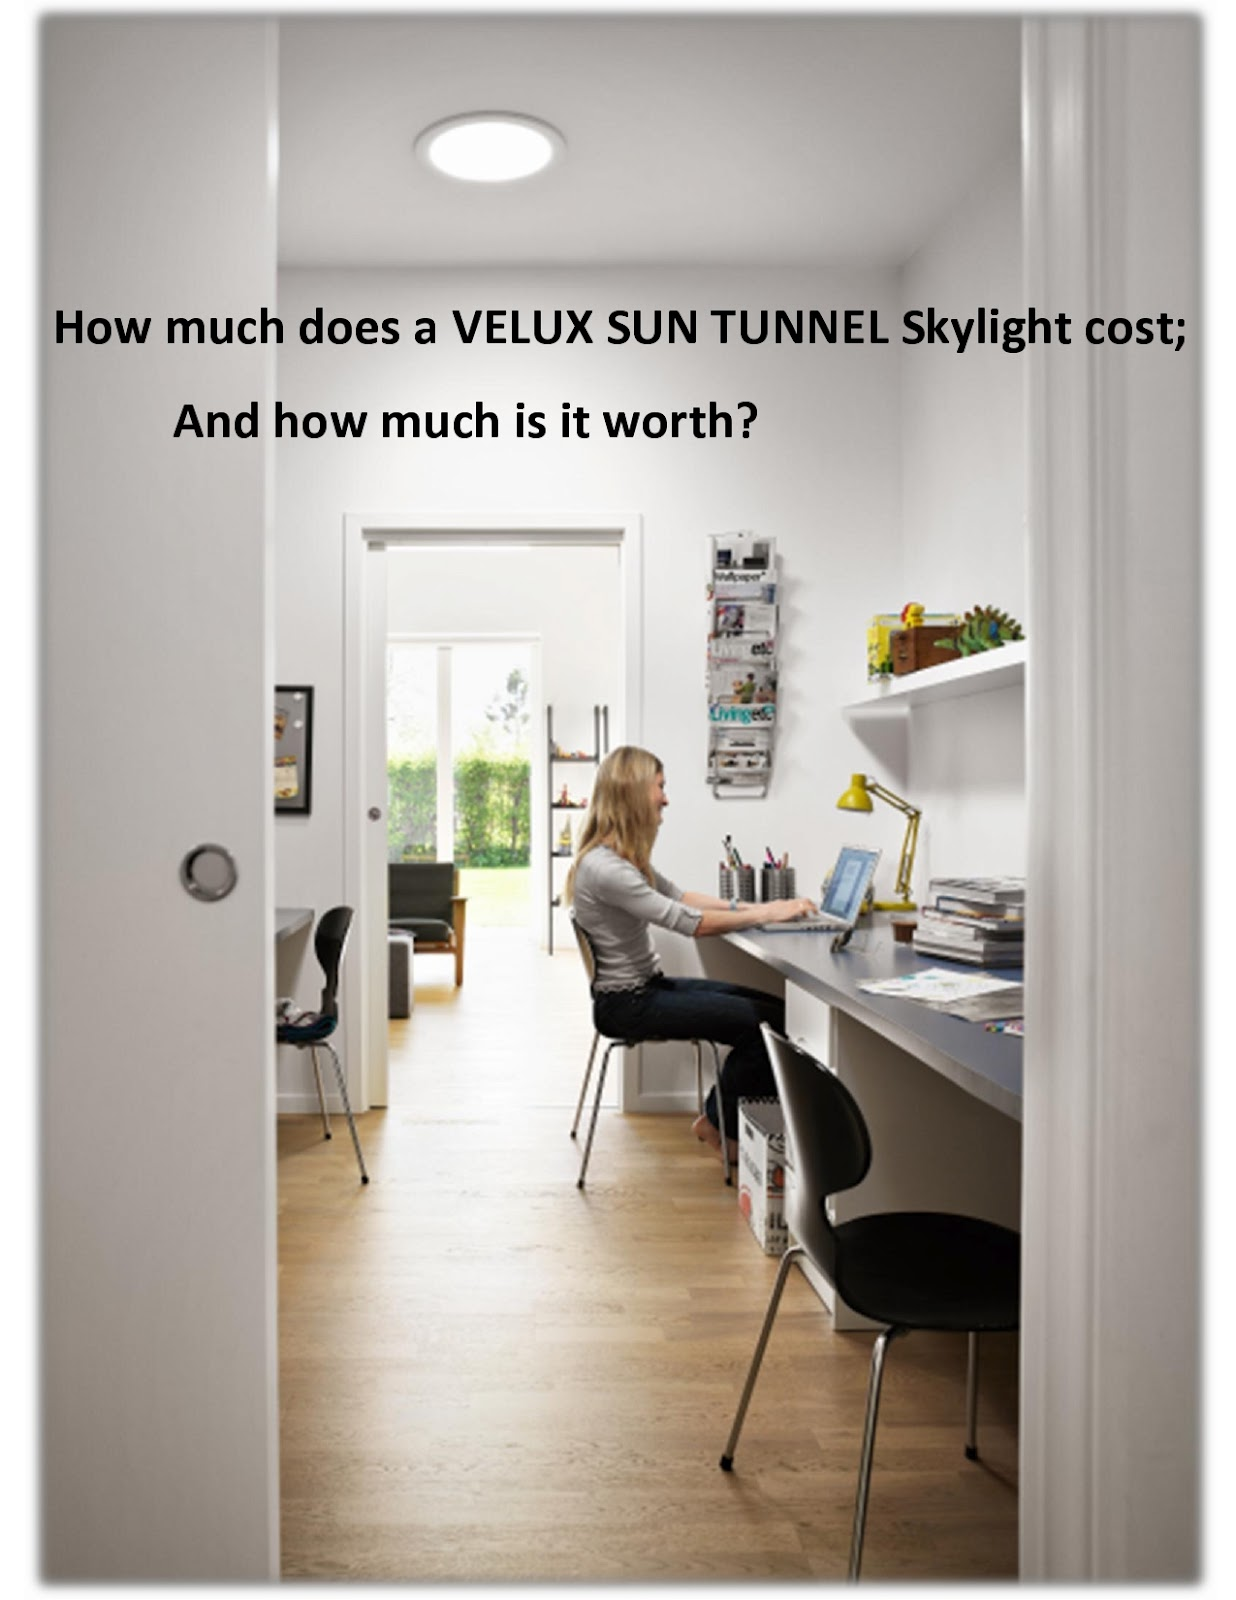 Skylight Tube Naturalight Solar Inc What Does A Tube Skylight Cost And What